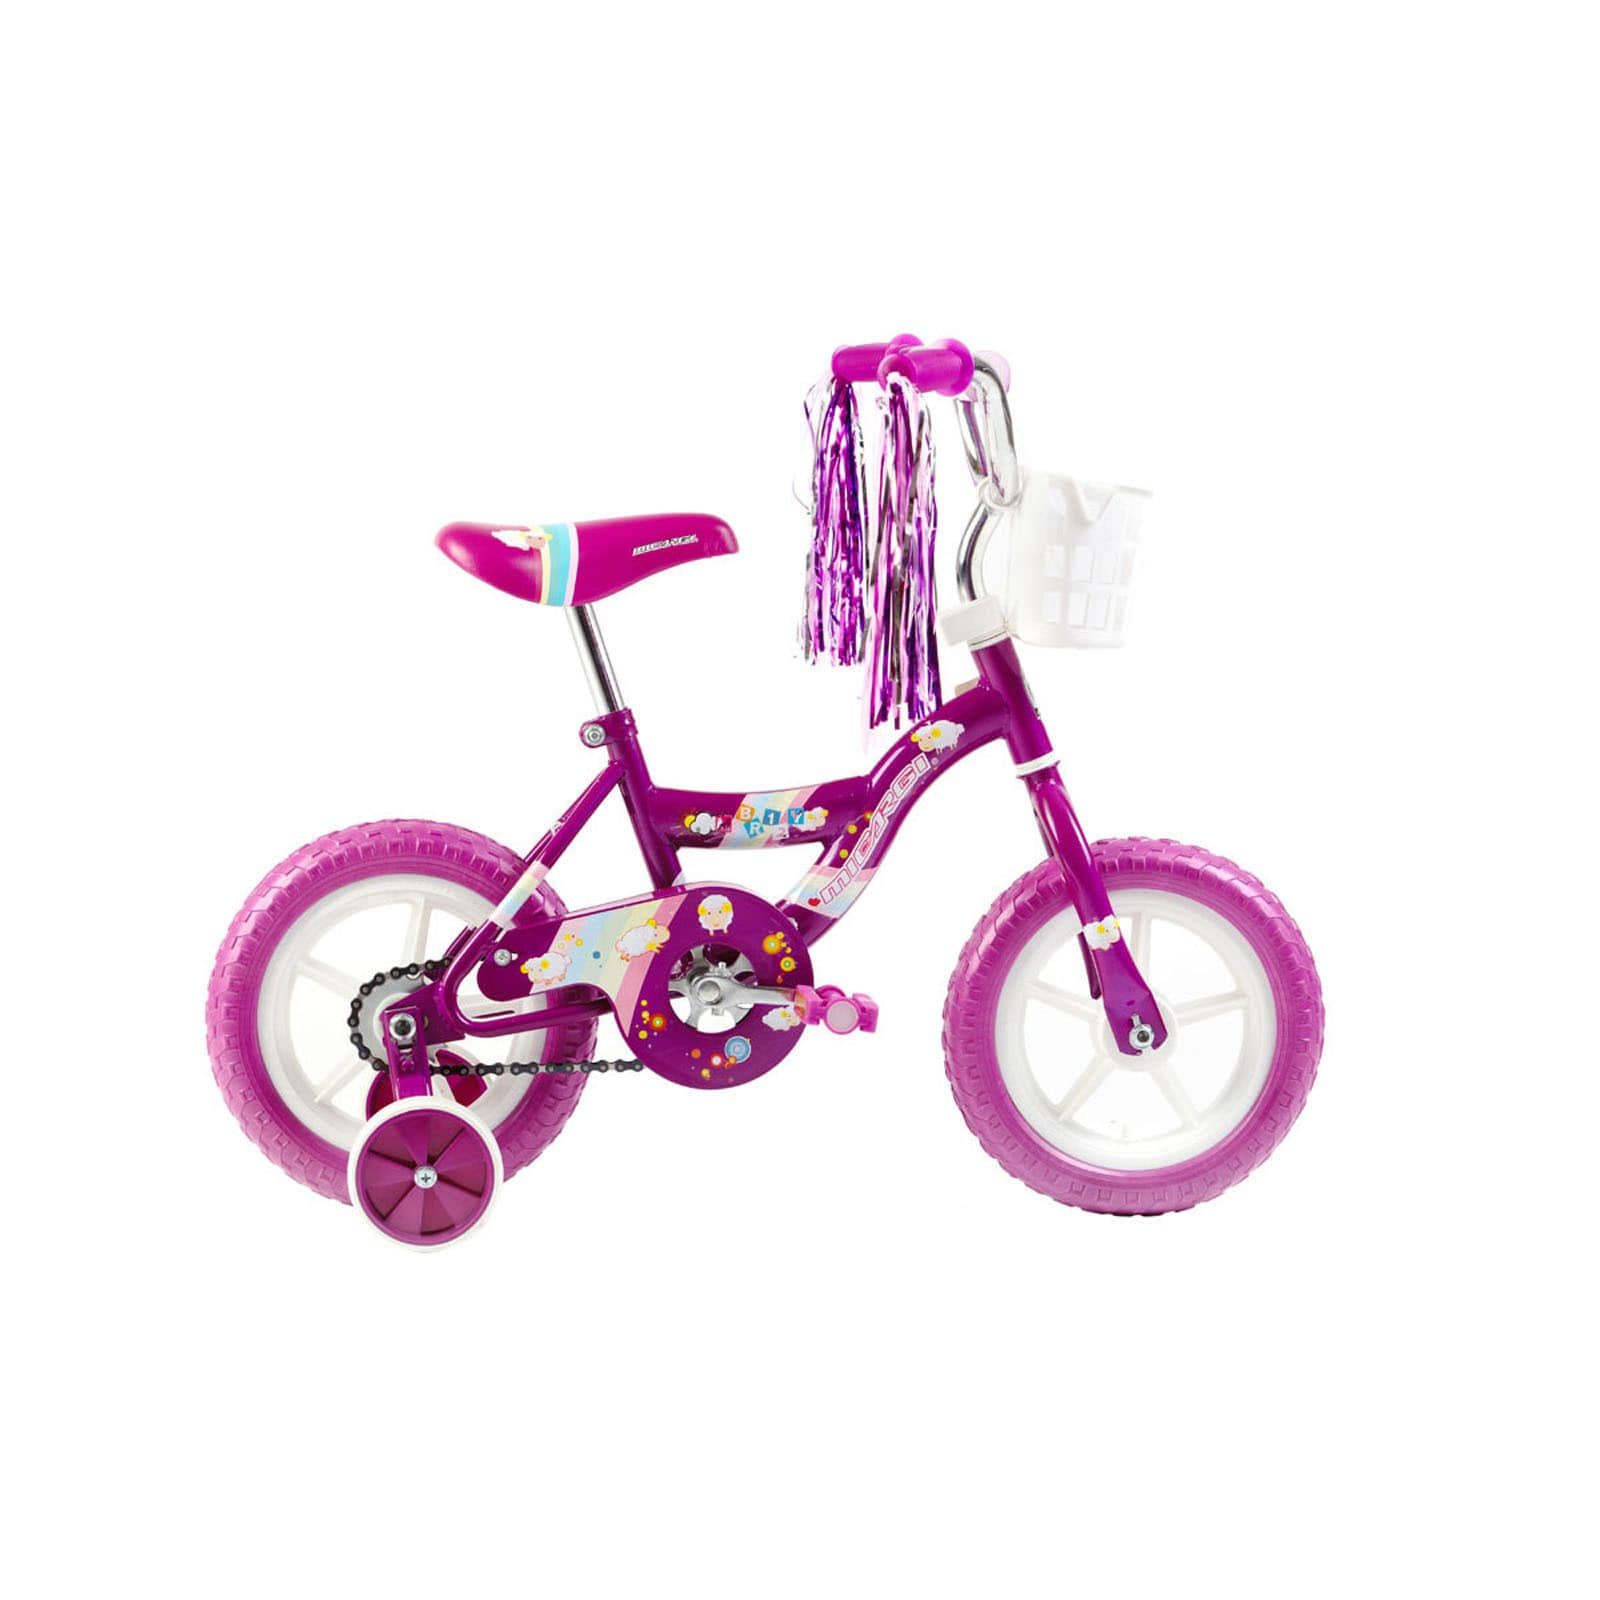 Micargi Kids Girls 12-inch Bicycle with Training Wheels a...